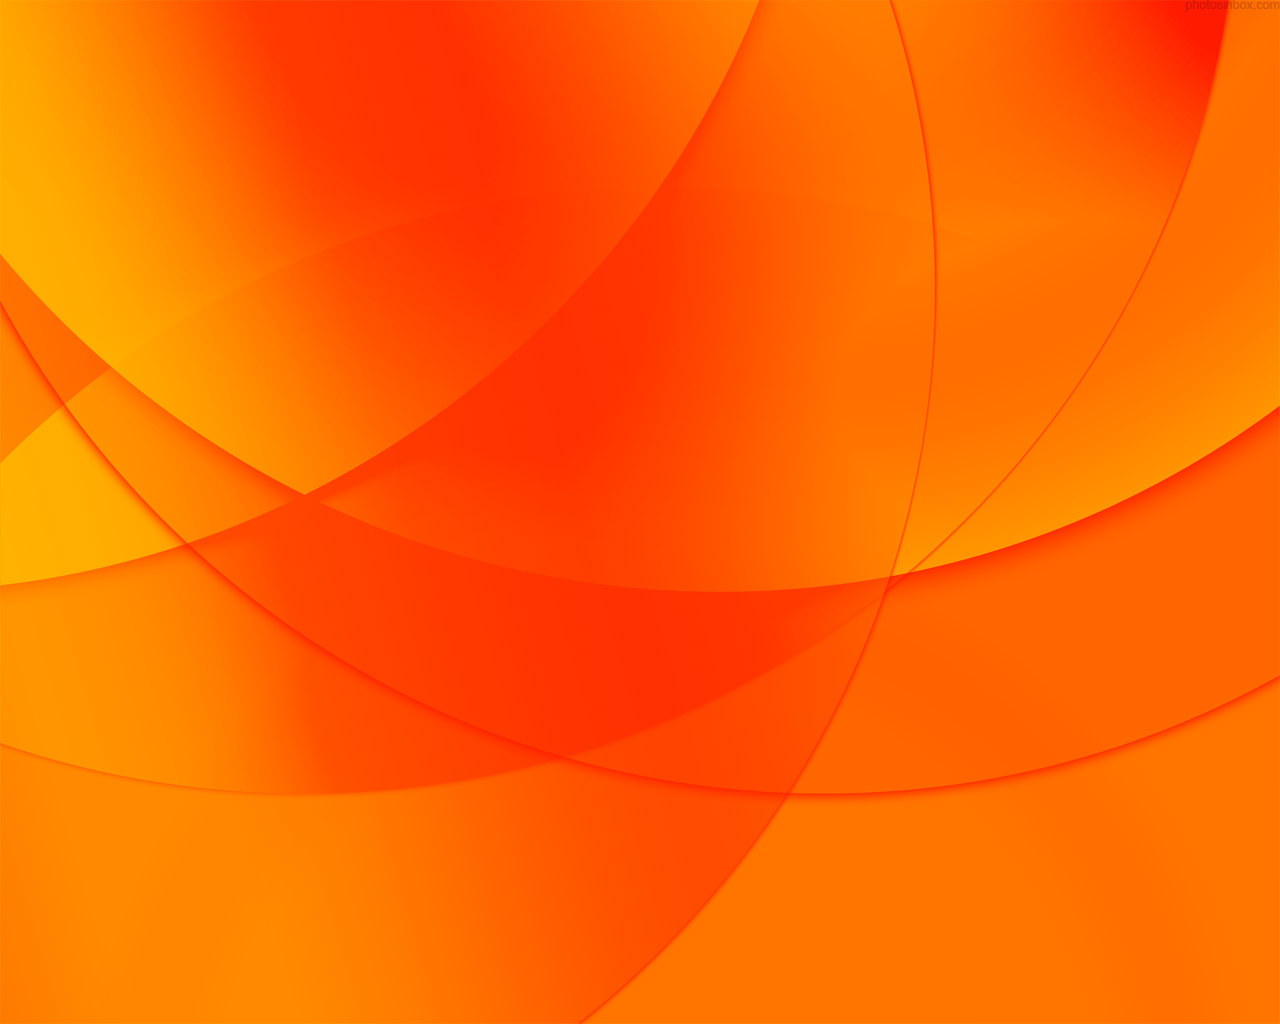 Enlarge Background 1280x1024px Abstract glowing orange background 1280x1024